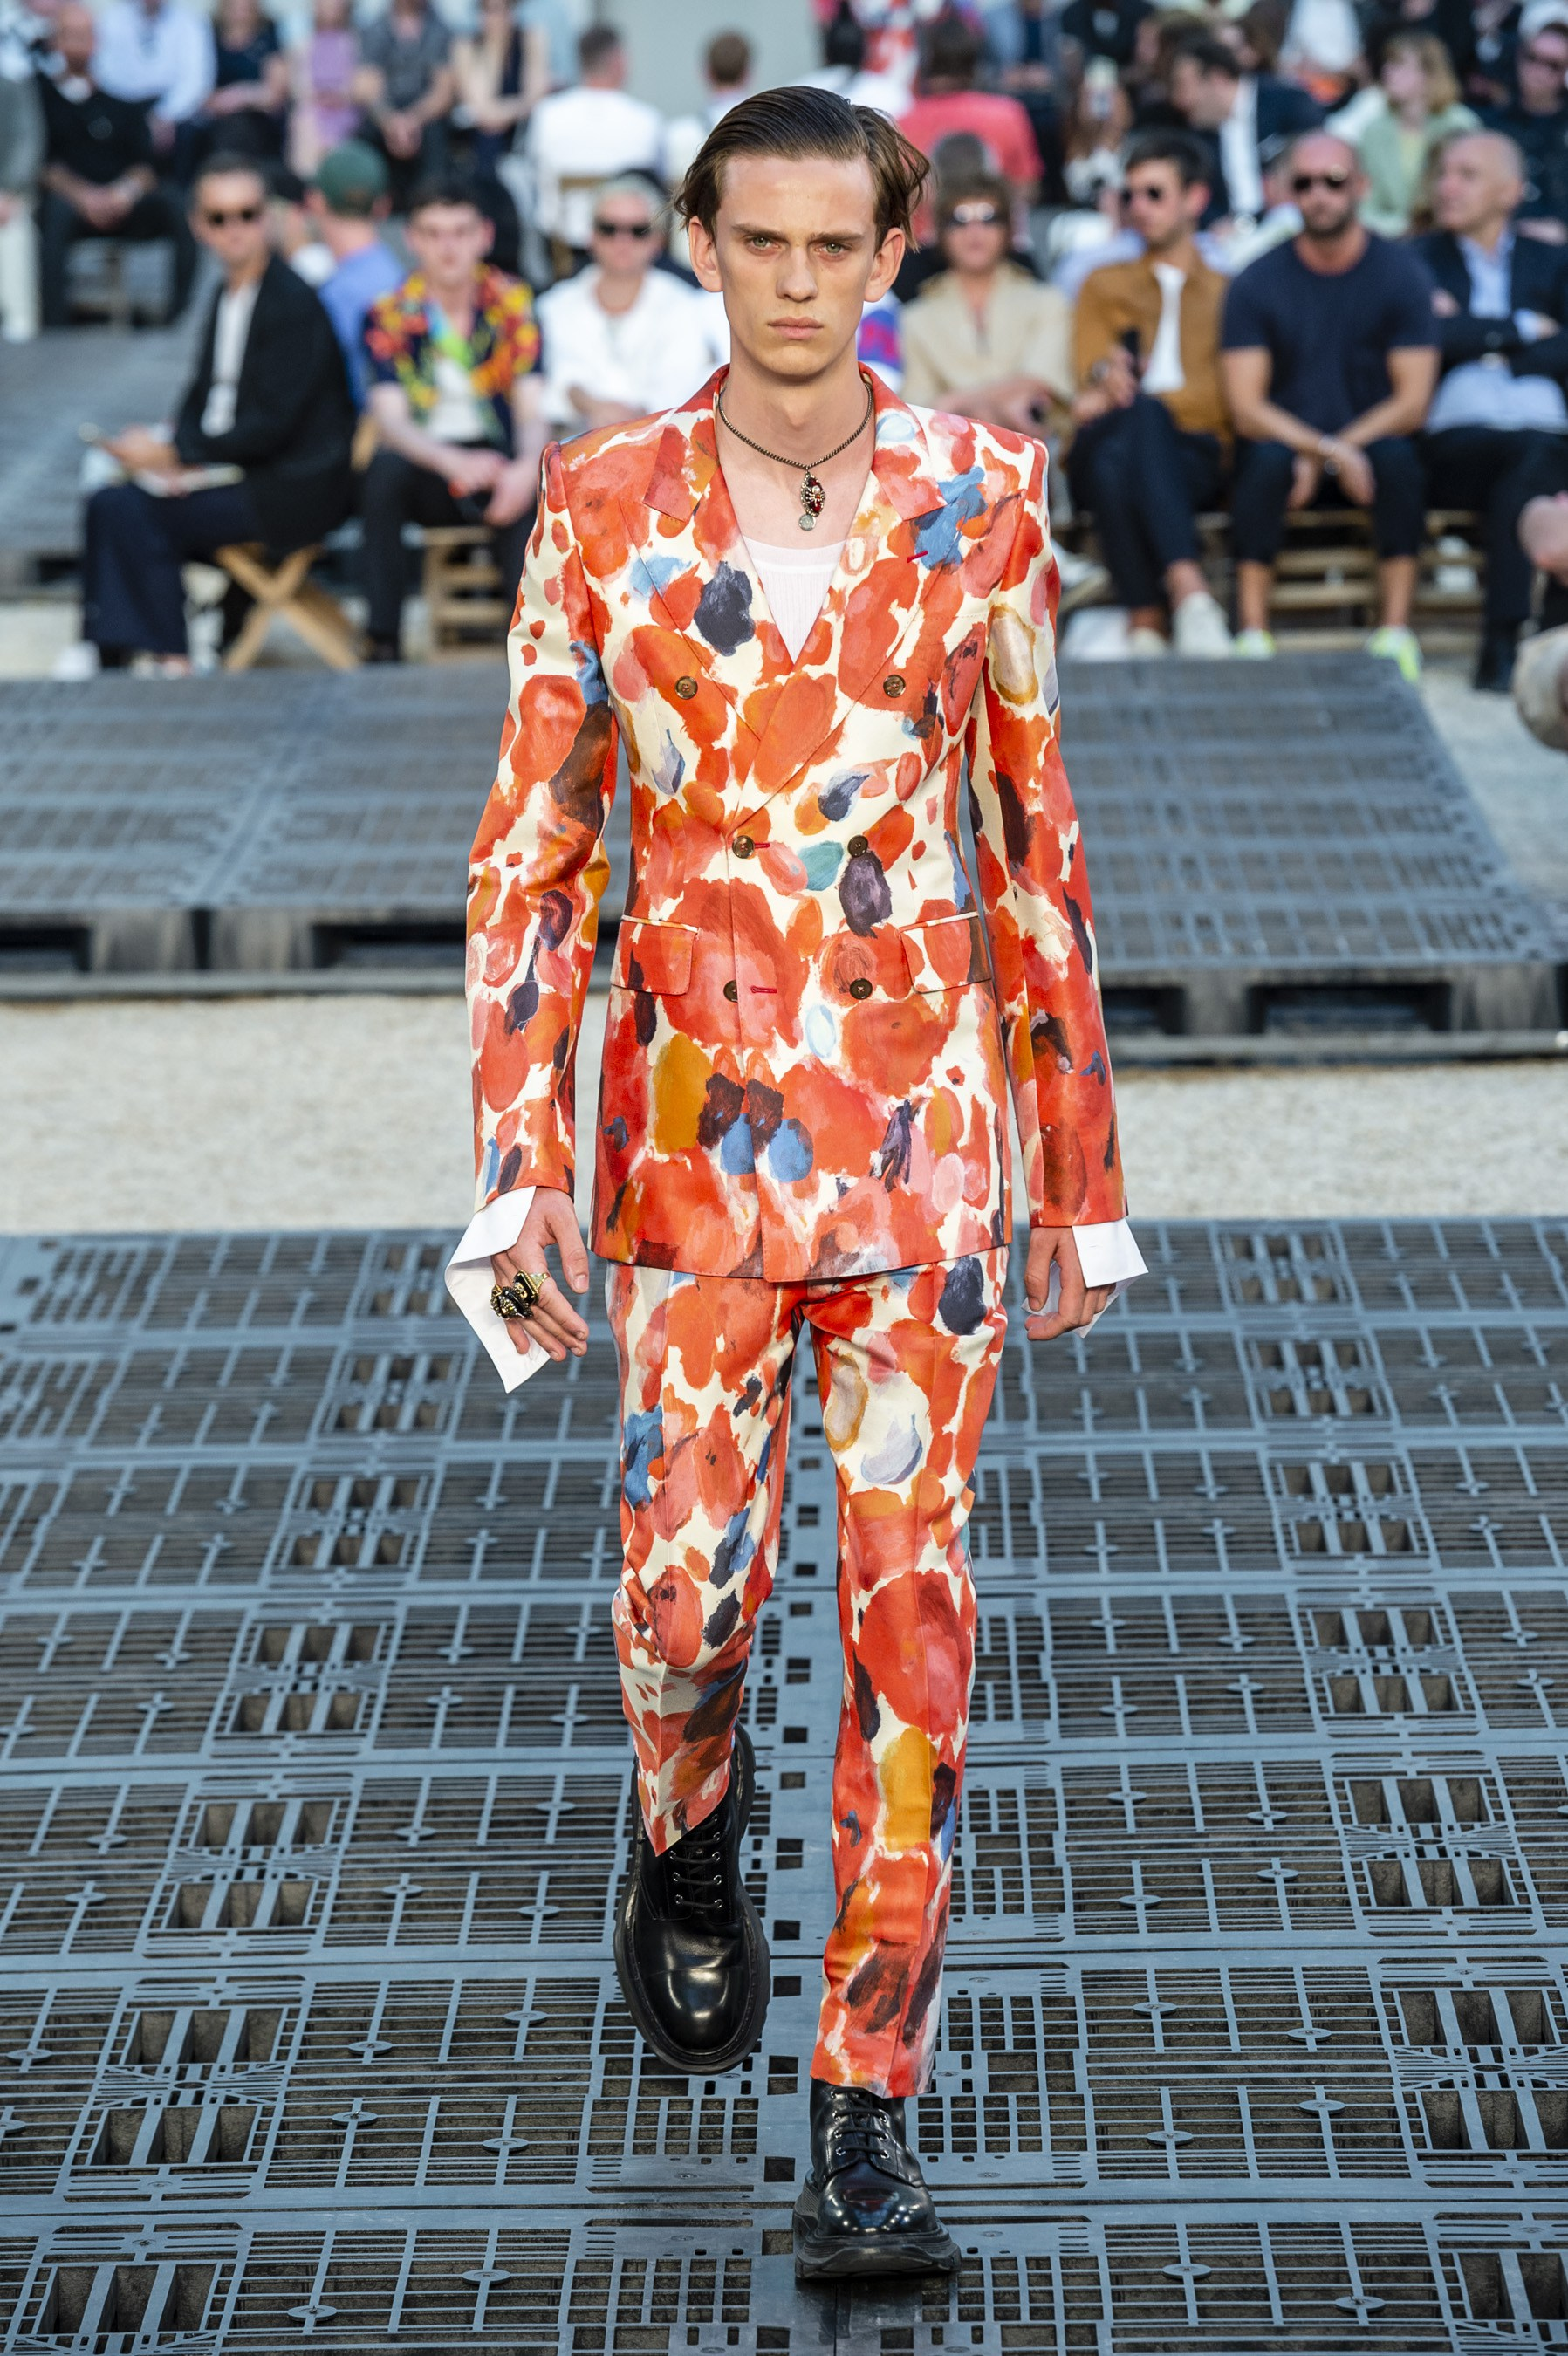 Flower Power - Men's Fashion Trend Spring 2019